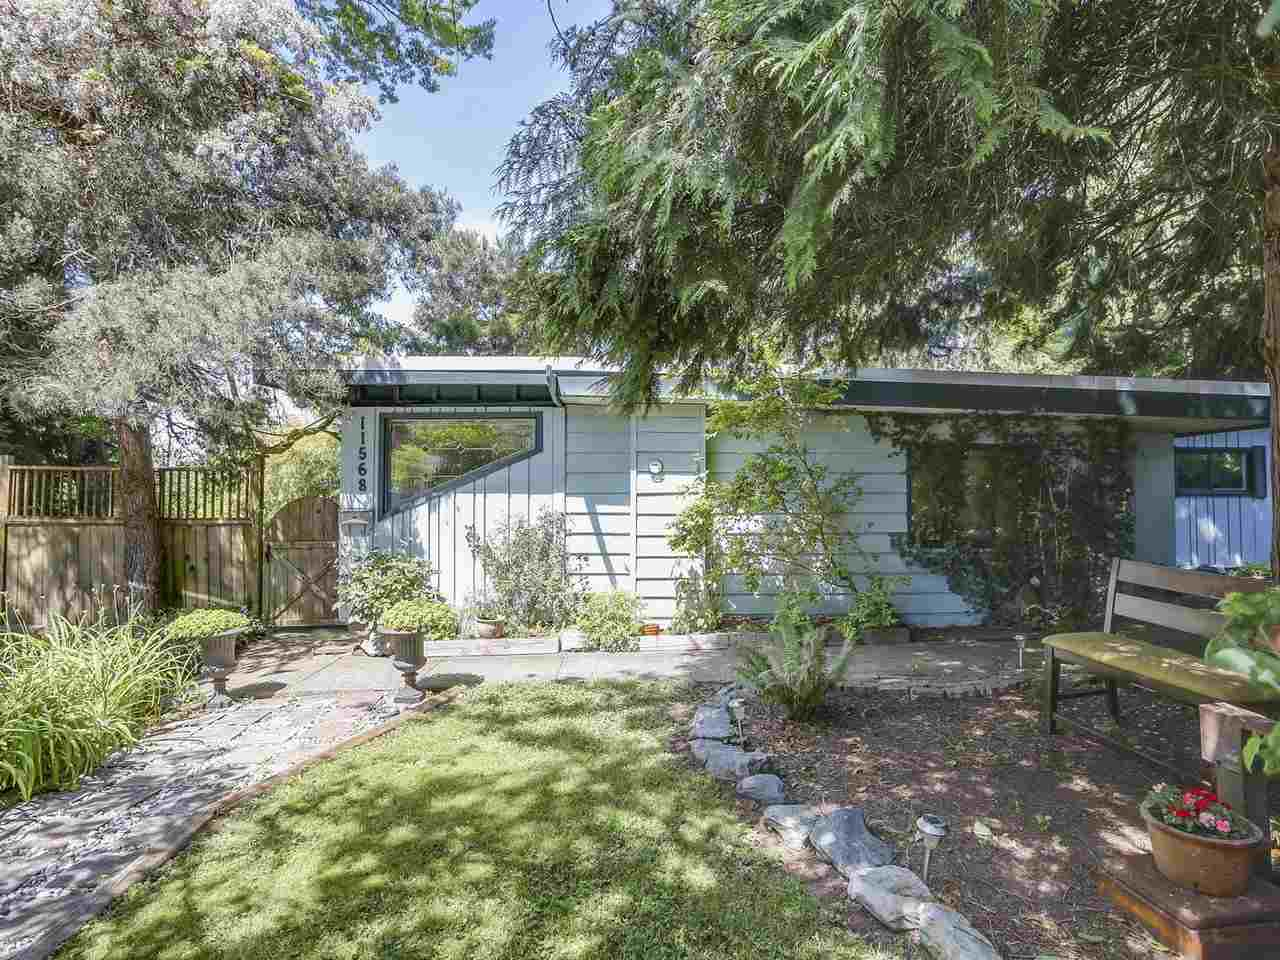 INVESTOR ALERT or UNIQUE FAMILY HOME! City of Delta says it is potentially sub-dividable. 3 Bdrm rancher with a bonus of 1 bdrm bungalow (guest house) in a very nice & quiet area. Stunning 1/3 acre park-like back yard lovingly built over time. Pride of ownership is in everything this property has to offer. Five minutes to Alex Fraser Bridge. Close to shopping and schools.